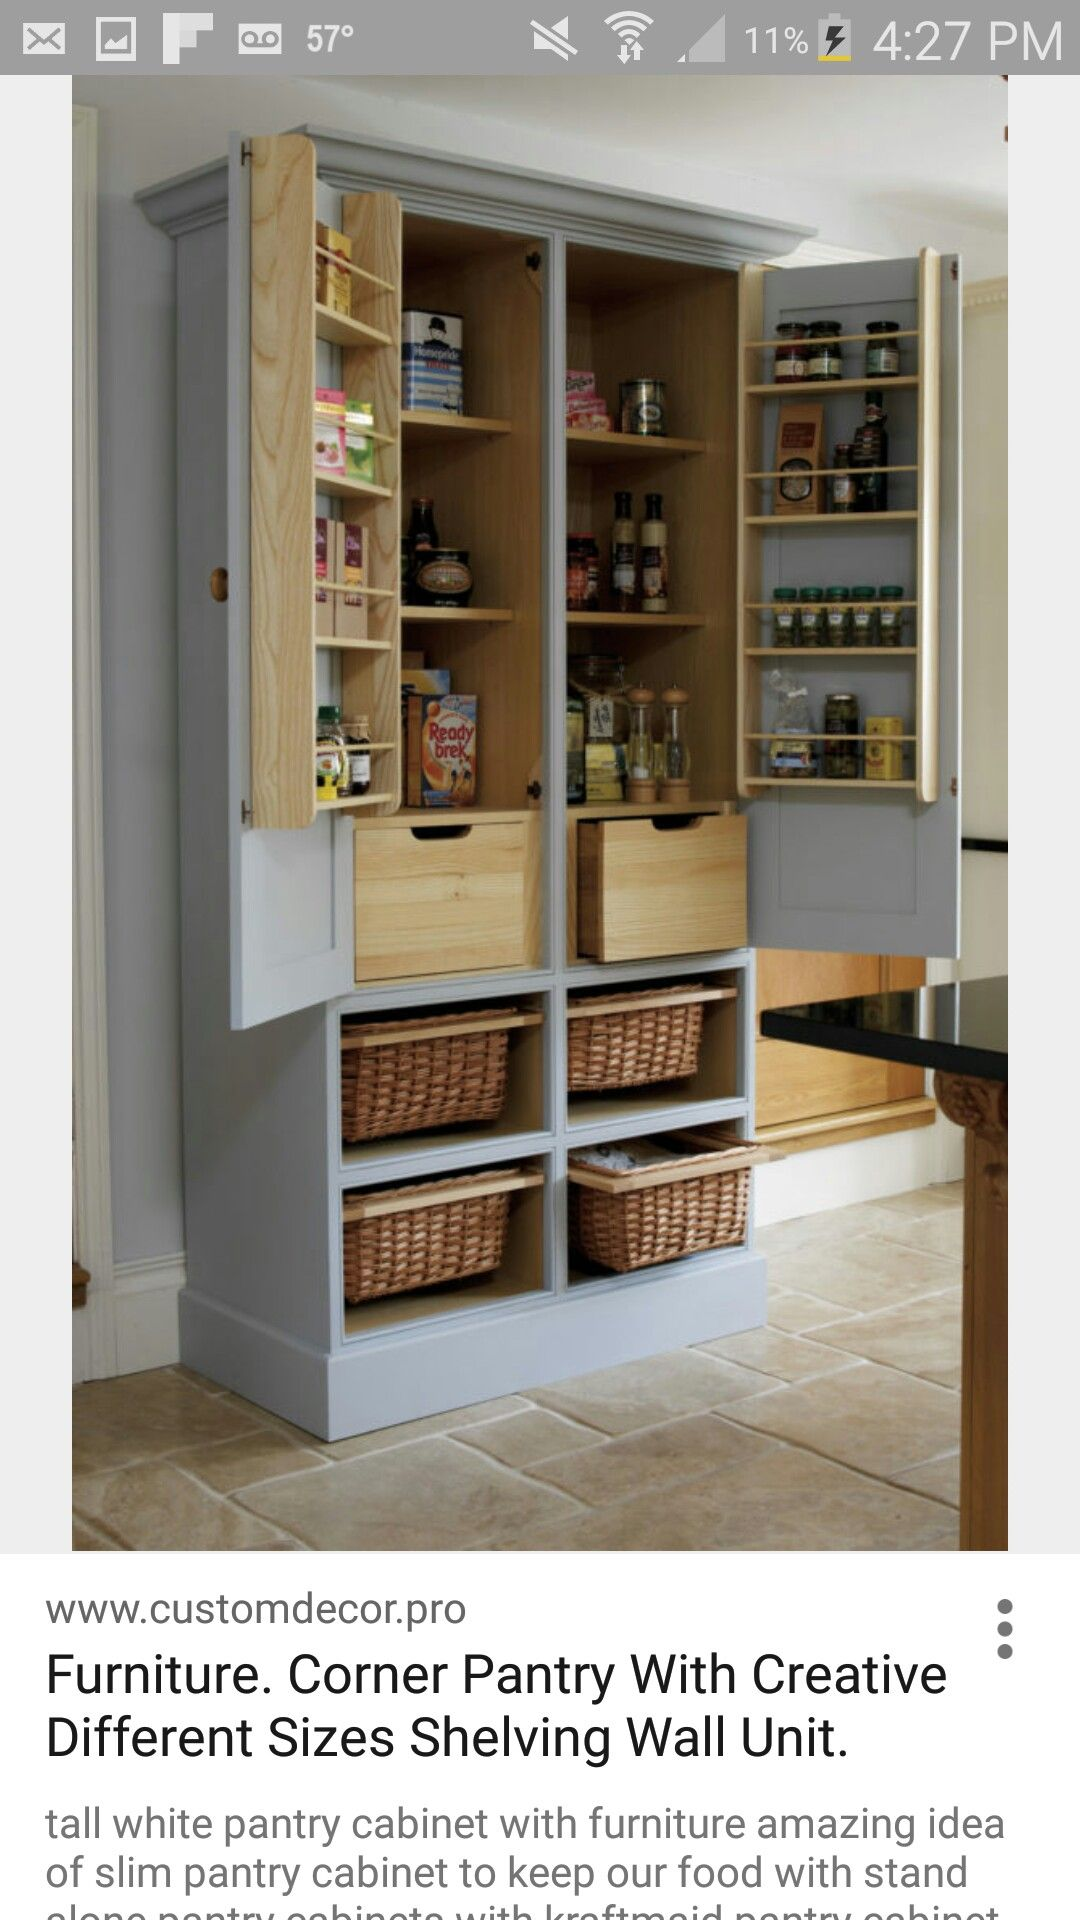 Buy a cabinet or build one? | Free standing kitchen pantry ... Pantry Ideas Kitchen Cabinets Wholesale on kitchen cabinet doors wholesale, kitchen islands wholesale, bathroom cabinets wholesale, storage cabinets wholesale, kitchen pantry furniture, kitchen chairs wholesale,